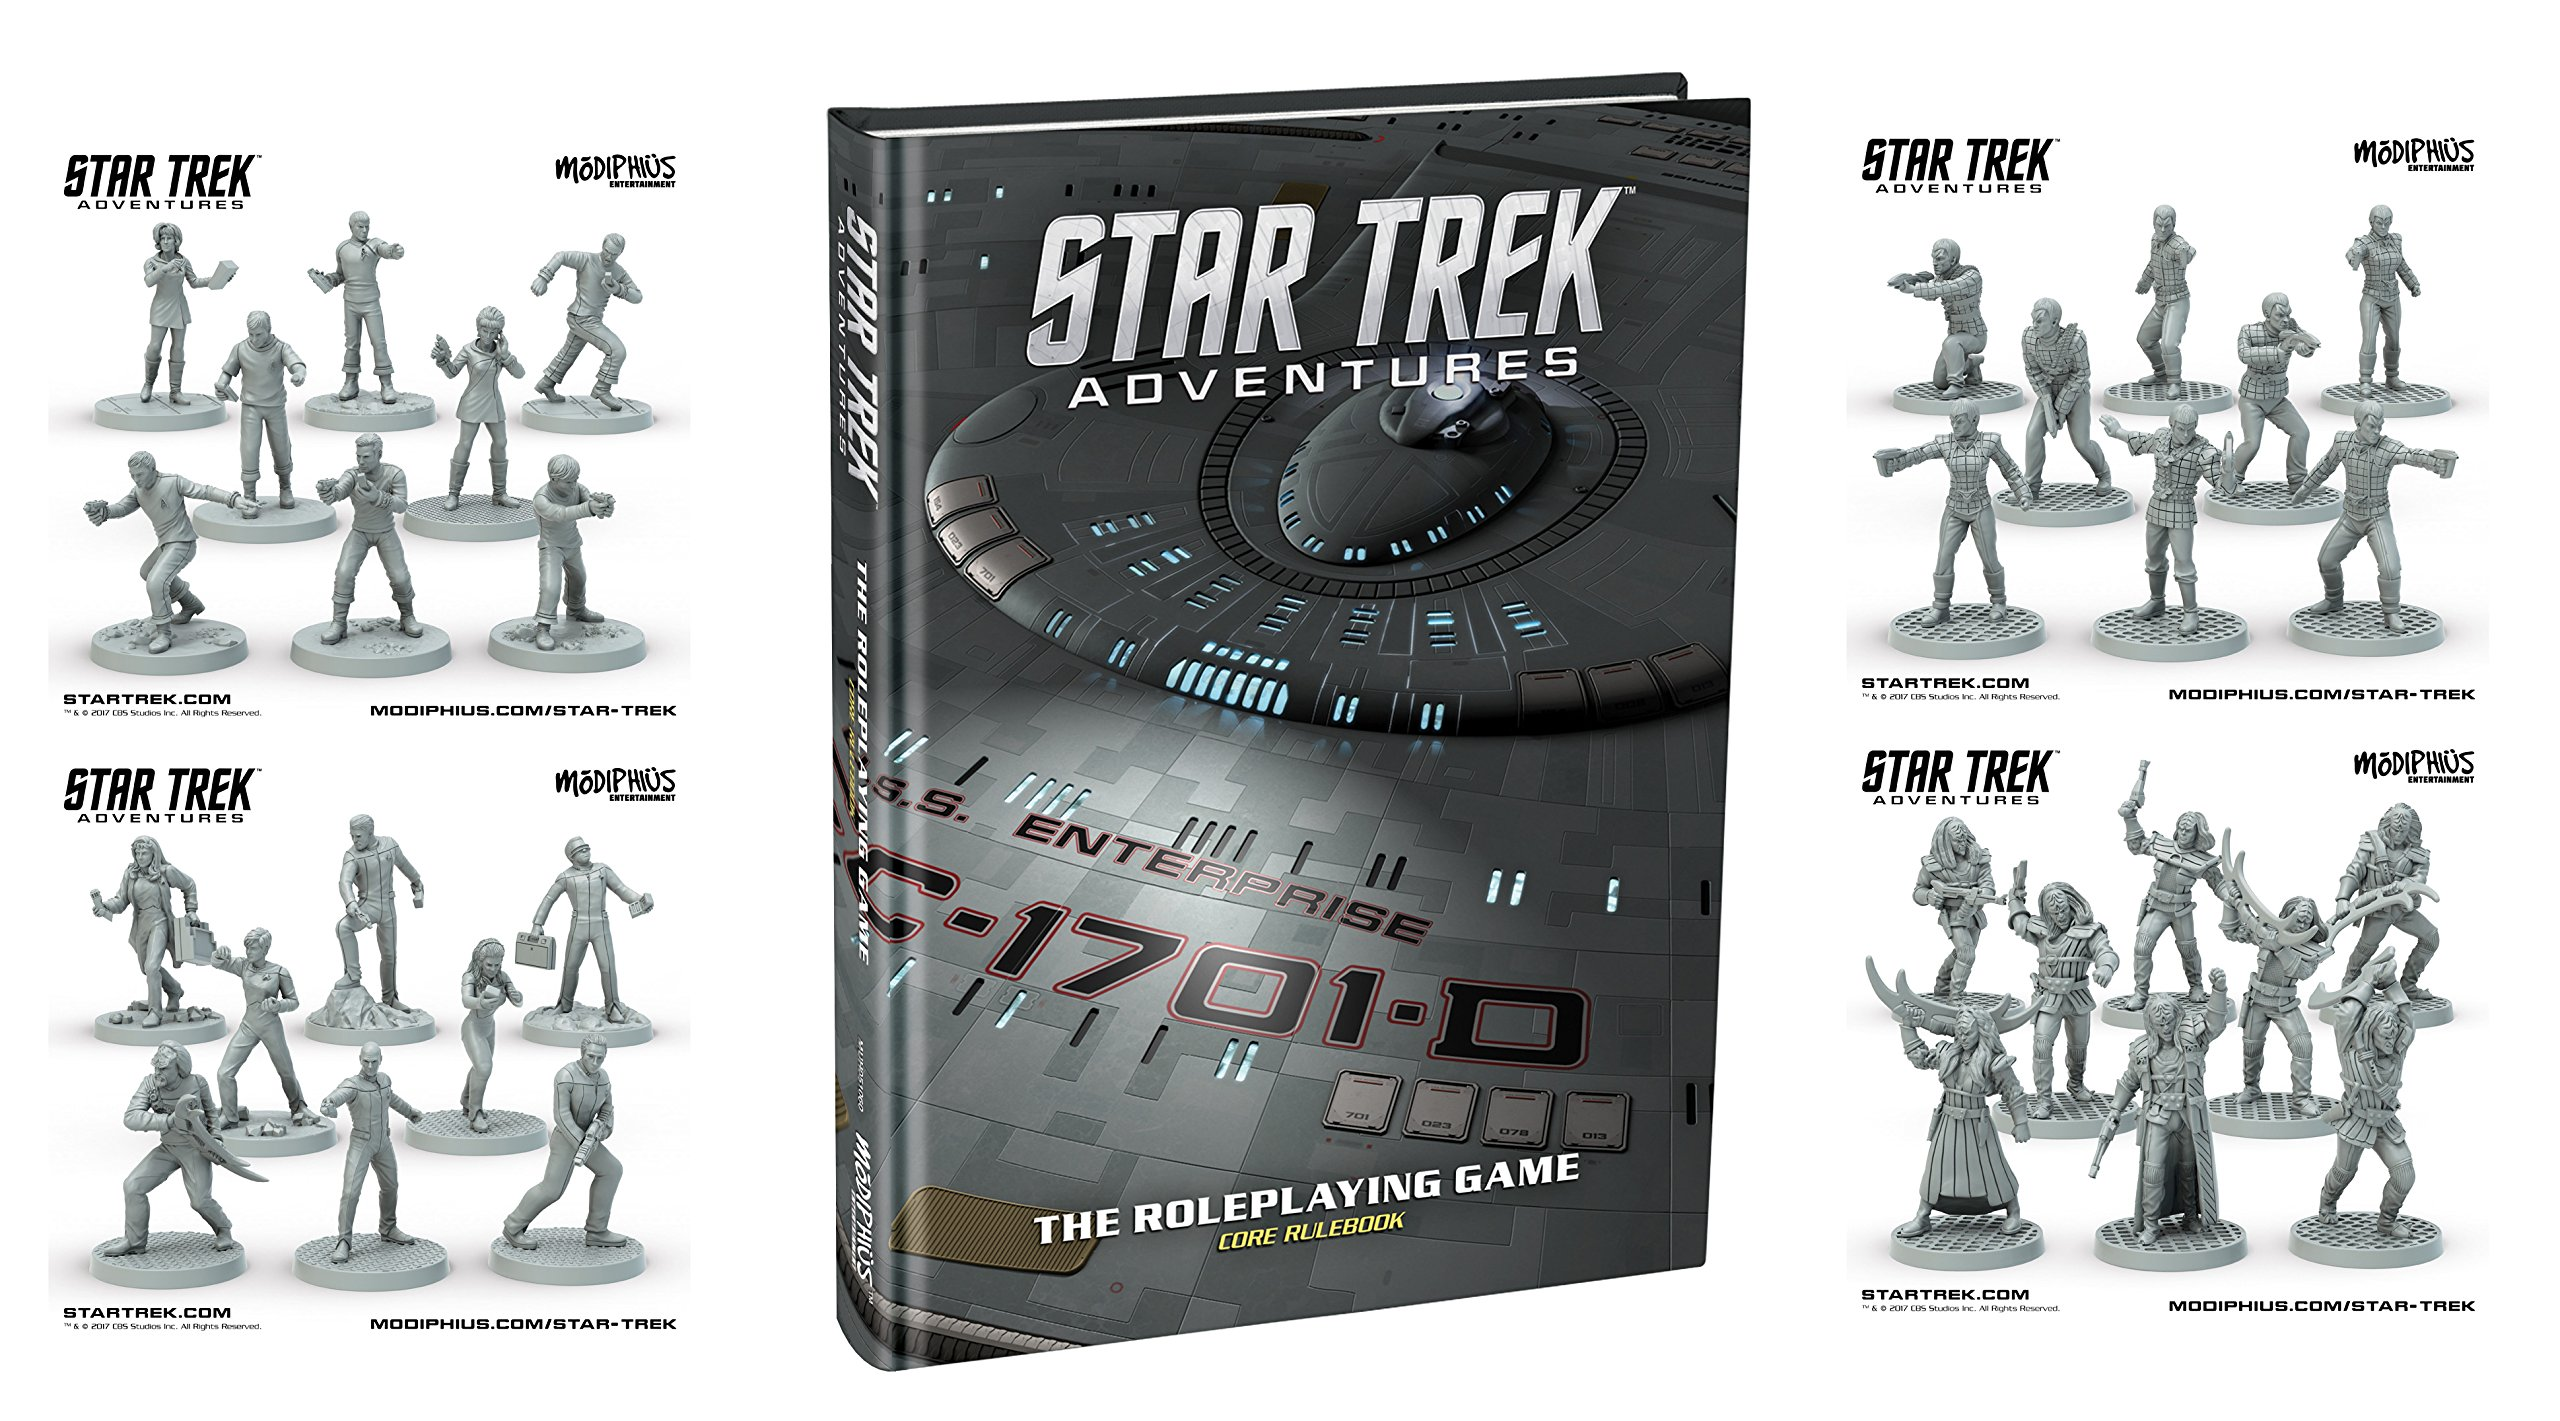 Star Trek Adventures Collector's Edition Core Rulebook + The Original Series, The Next Generation, Klingon Warband & Romulan Strike Team Miniatures